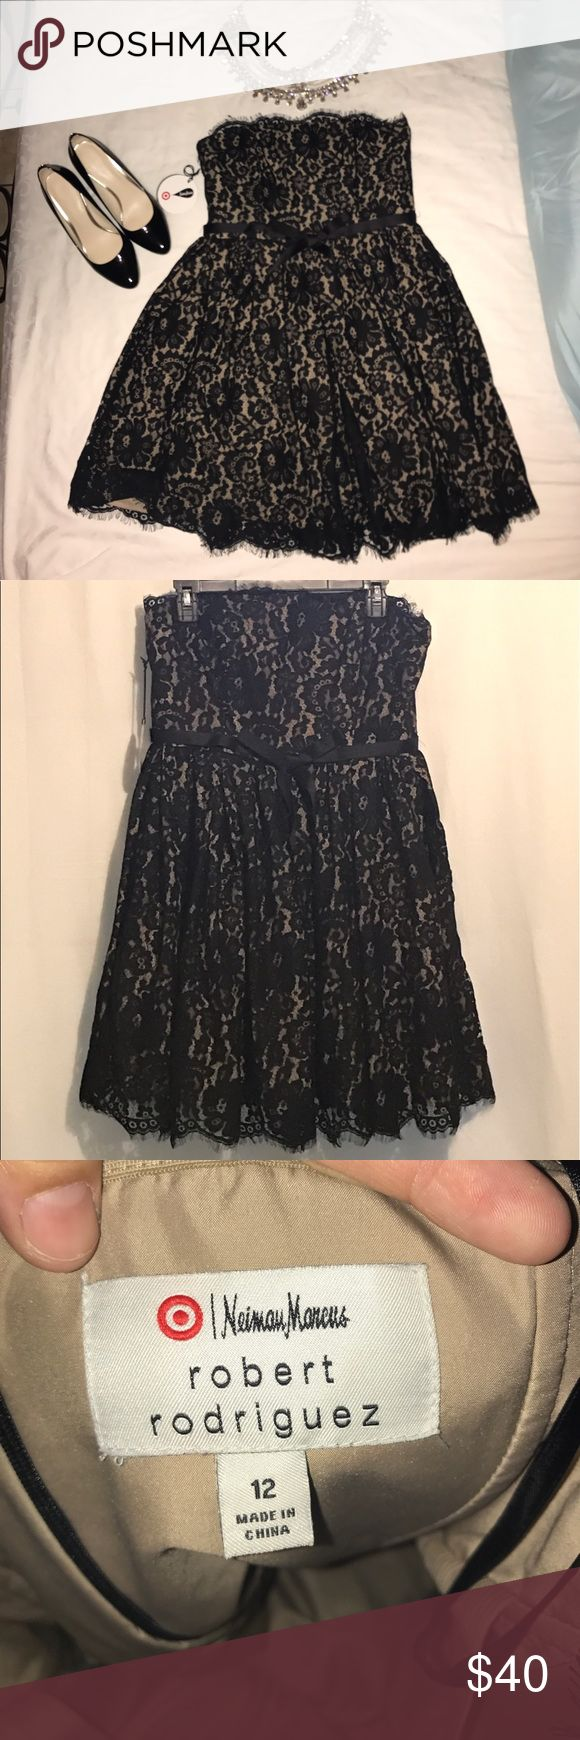 Strapless Robert Rodriguez party dress BNWT Black sleeveless party dress. Black lace on beige, has tule to puff up the skirt. Target Neiman Marcus And Robert Rodriguez collaboration Robert Rodriguez Dresses Strapless